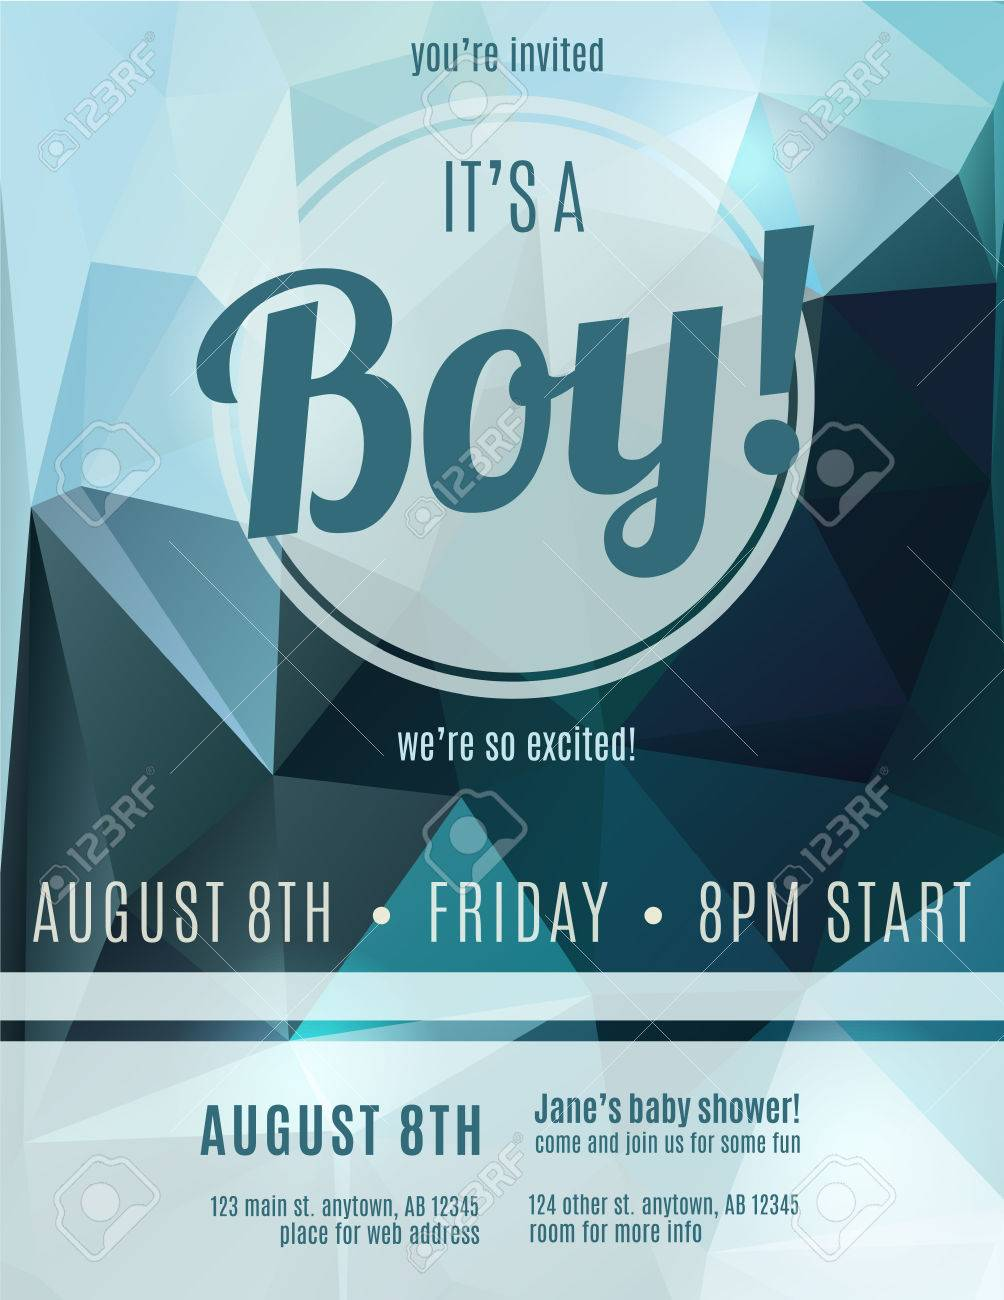 Its A Boy Birth Announcement Flyer Design Template For Baby Shower Stock  Vector   35653206